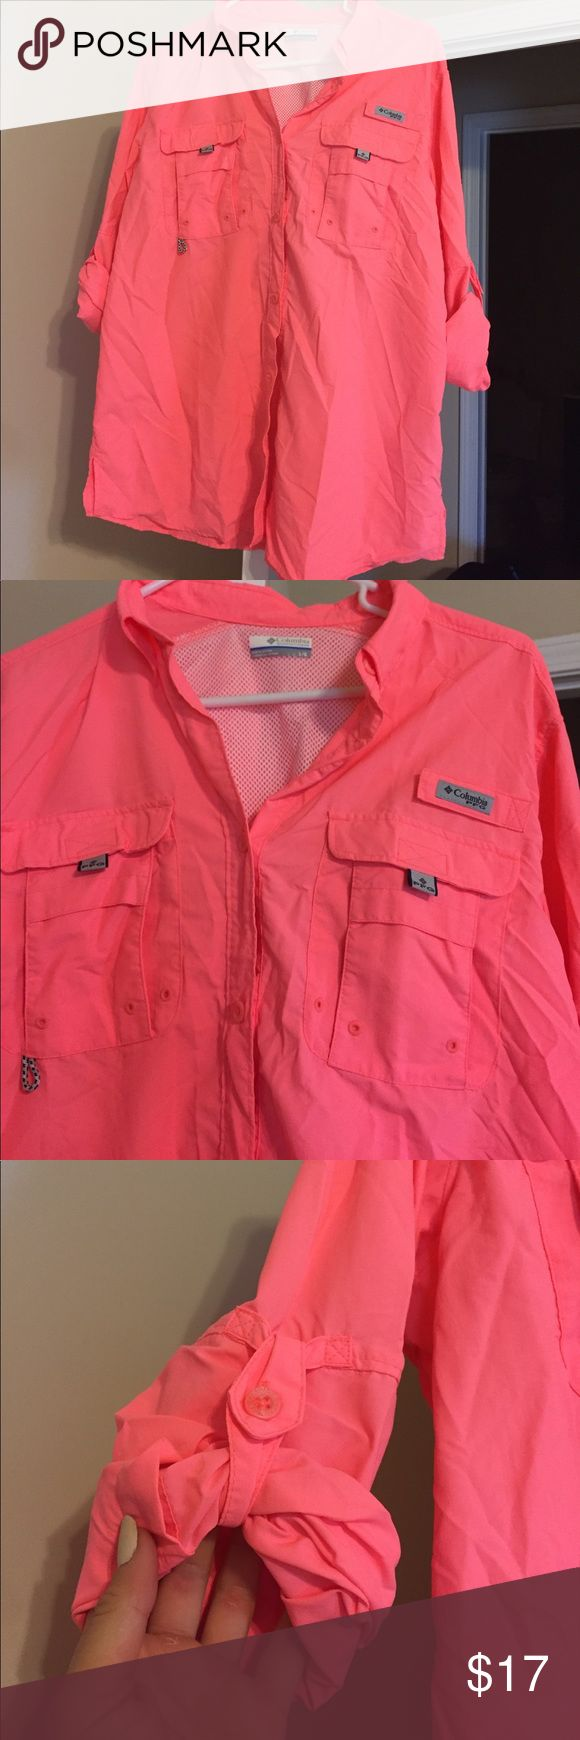 Men's Colombia PFG shirt Neon/bright orange PFG shirt, never been worn. Sleeves can be rolled down or up Columbia Shirts Casual Button Down Shirts